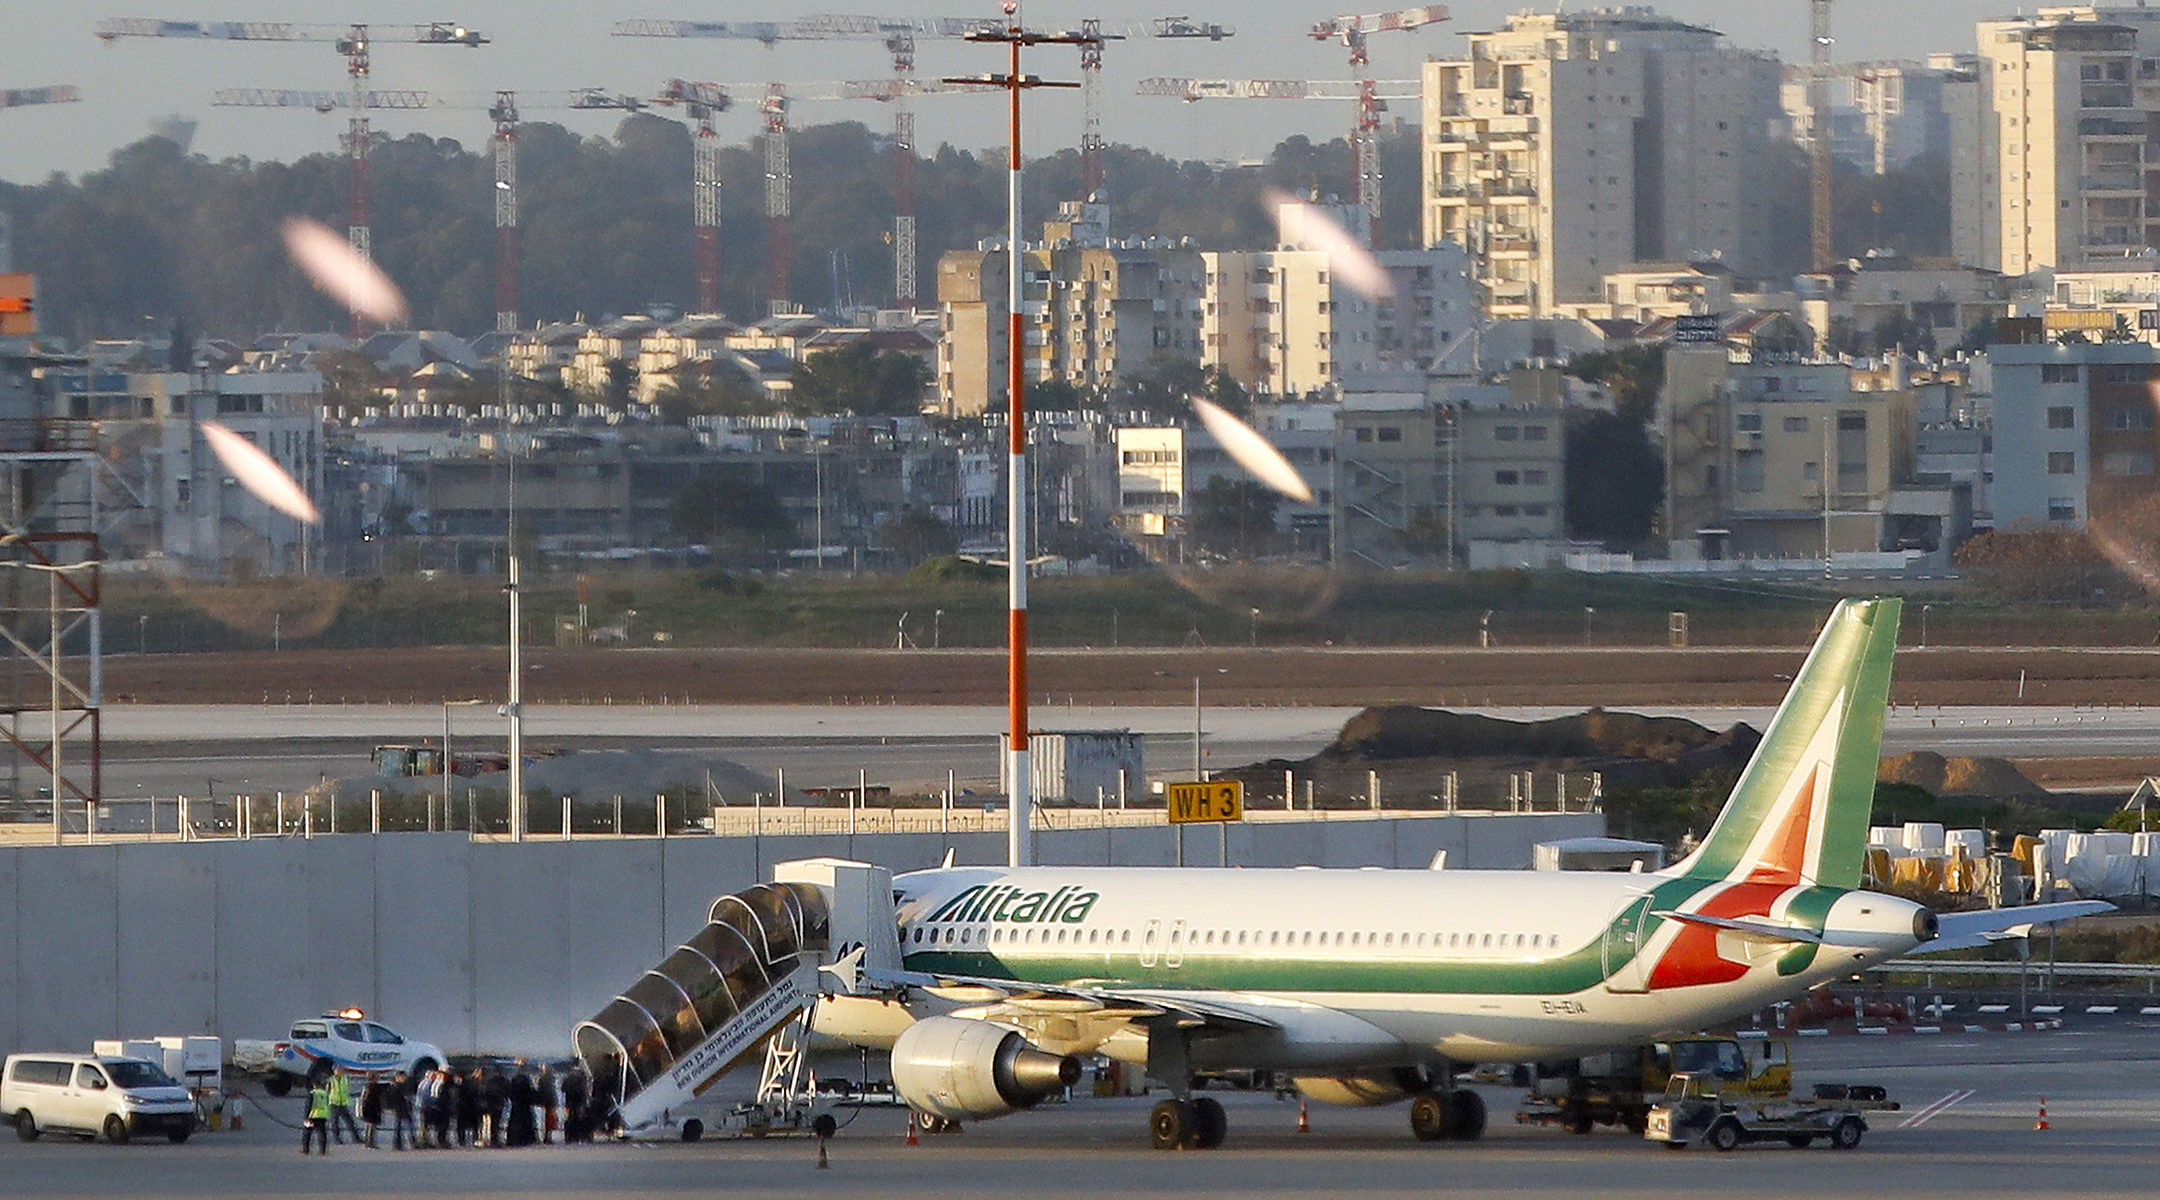 Travelers from Italy board an Alitalia plane after they were denied entry to Israel at Ben Gurion International Airport near Tel Aviv on February 27, 2020. (Jack Guez/AFP via Getty Images)